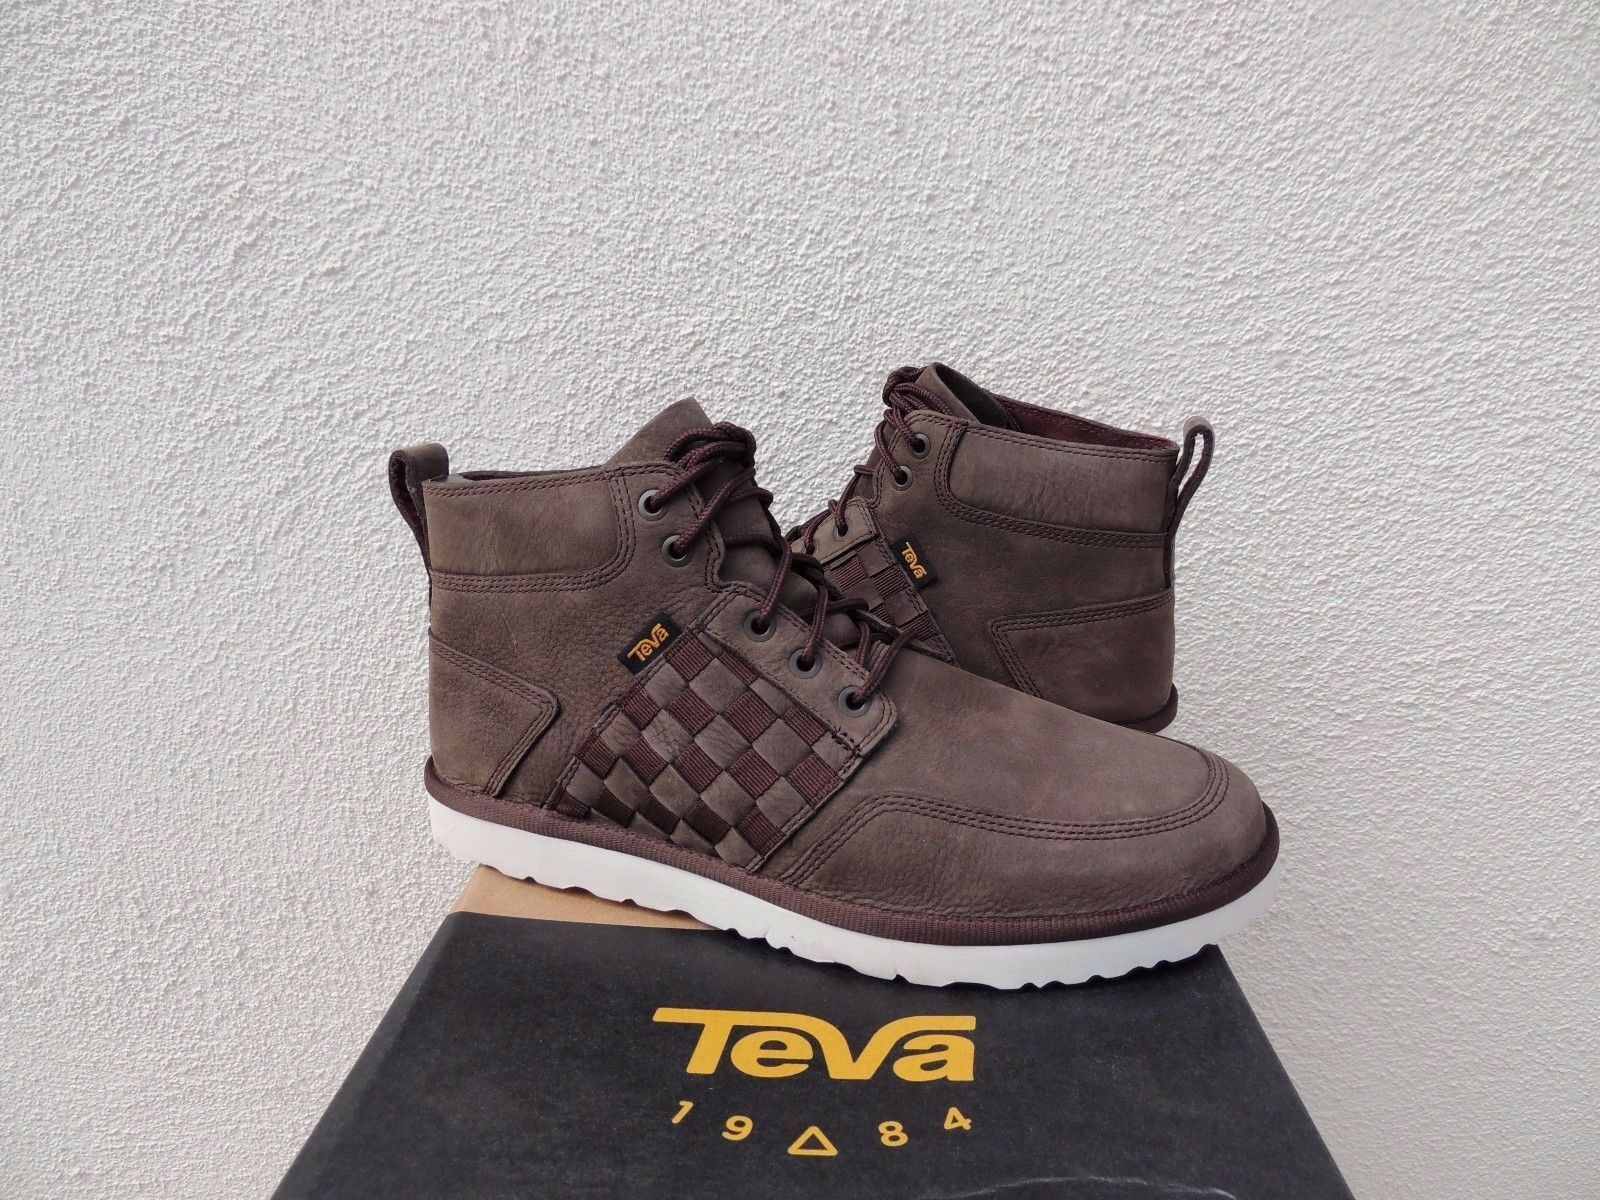 TEVA COROMAR BROWN LEATHER CHUKKA LACE-UP ANKLE BOOTS, MEN US 9/ ~NWT